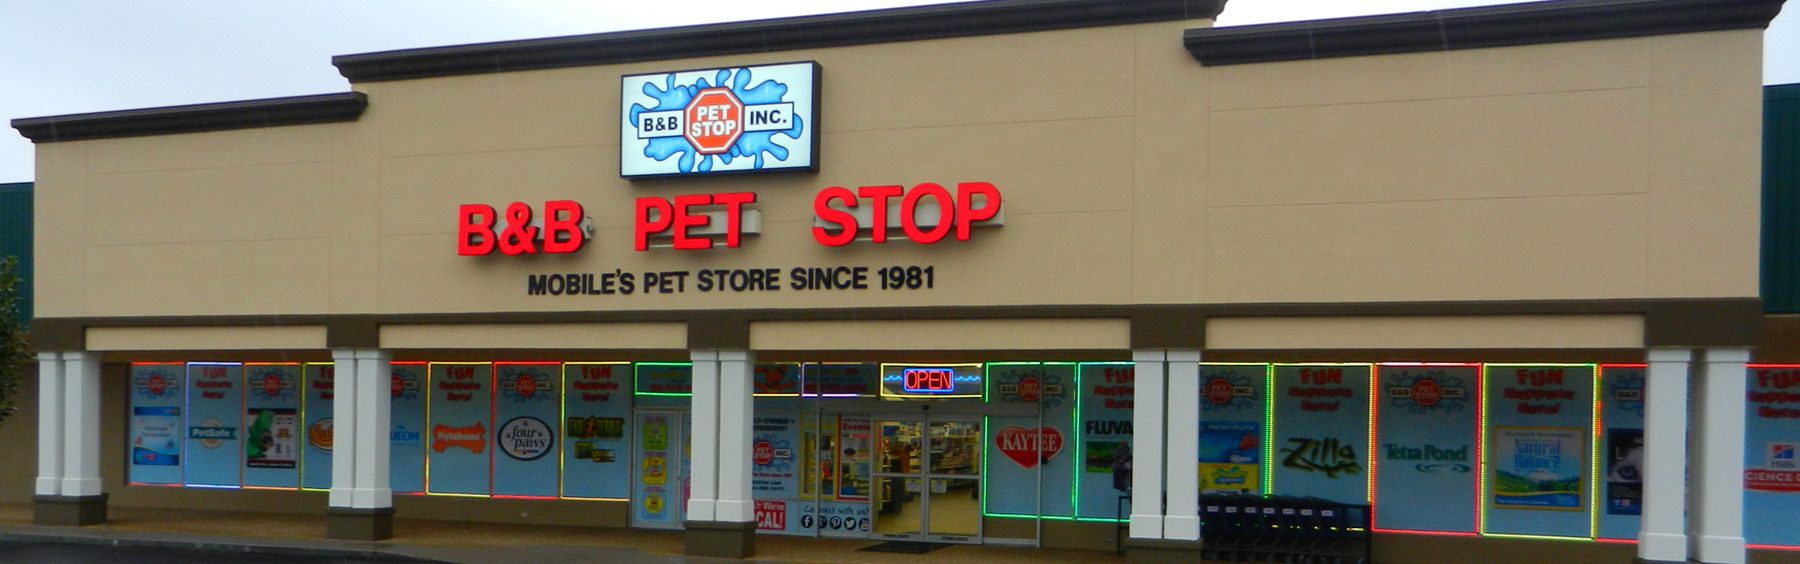 View of B&B Pet Stop store front